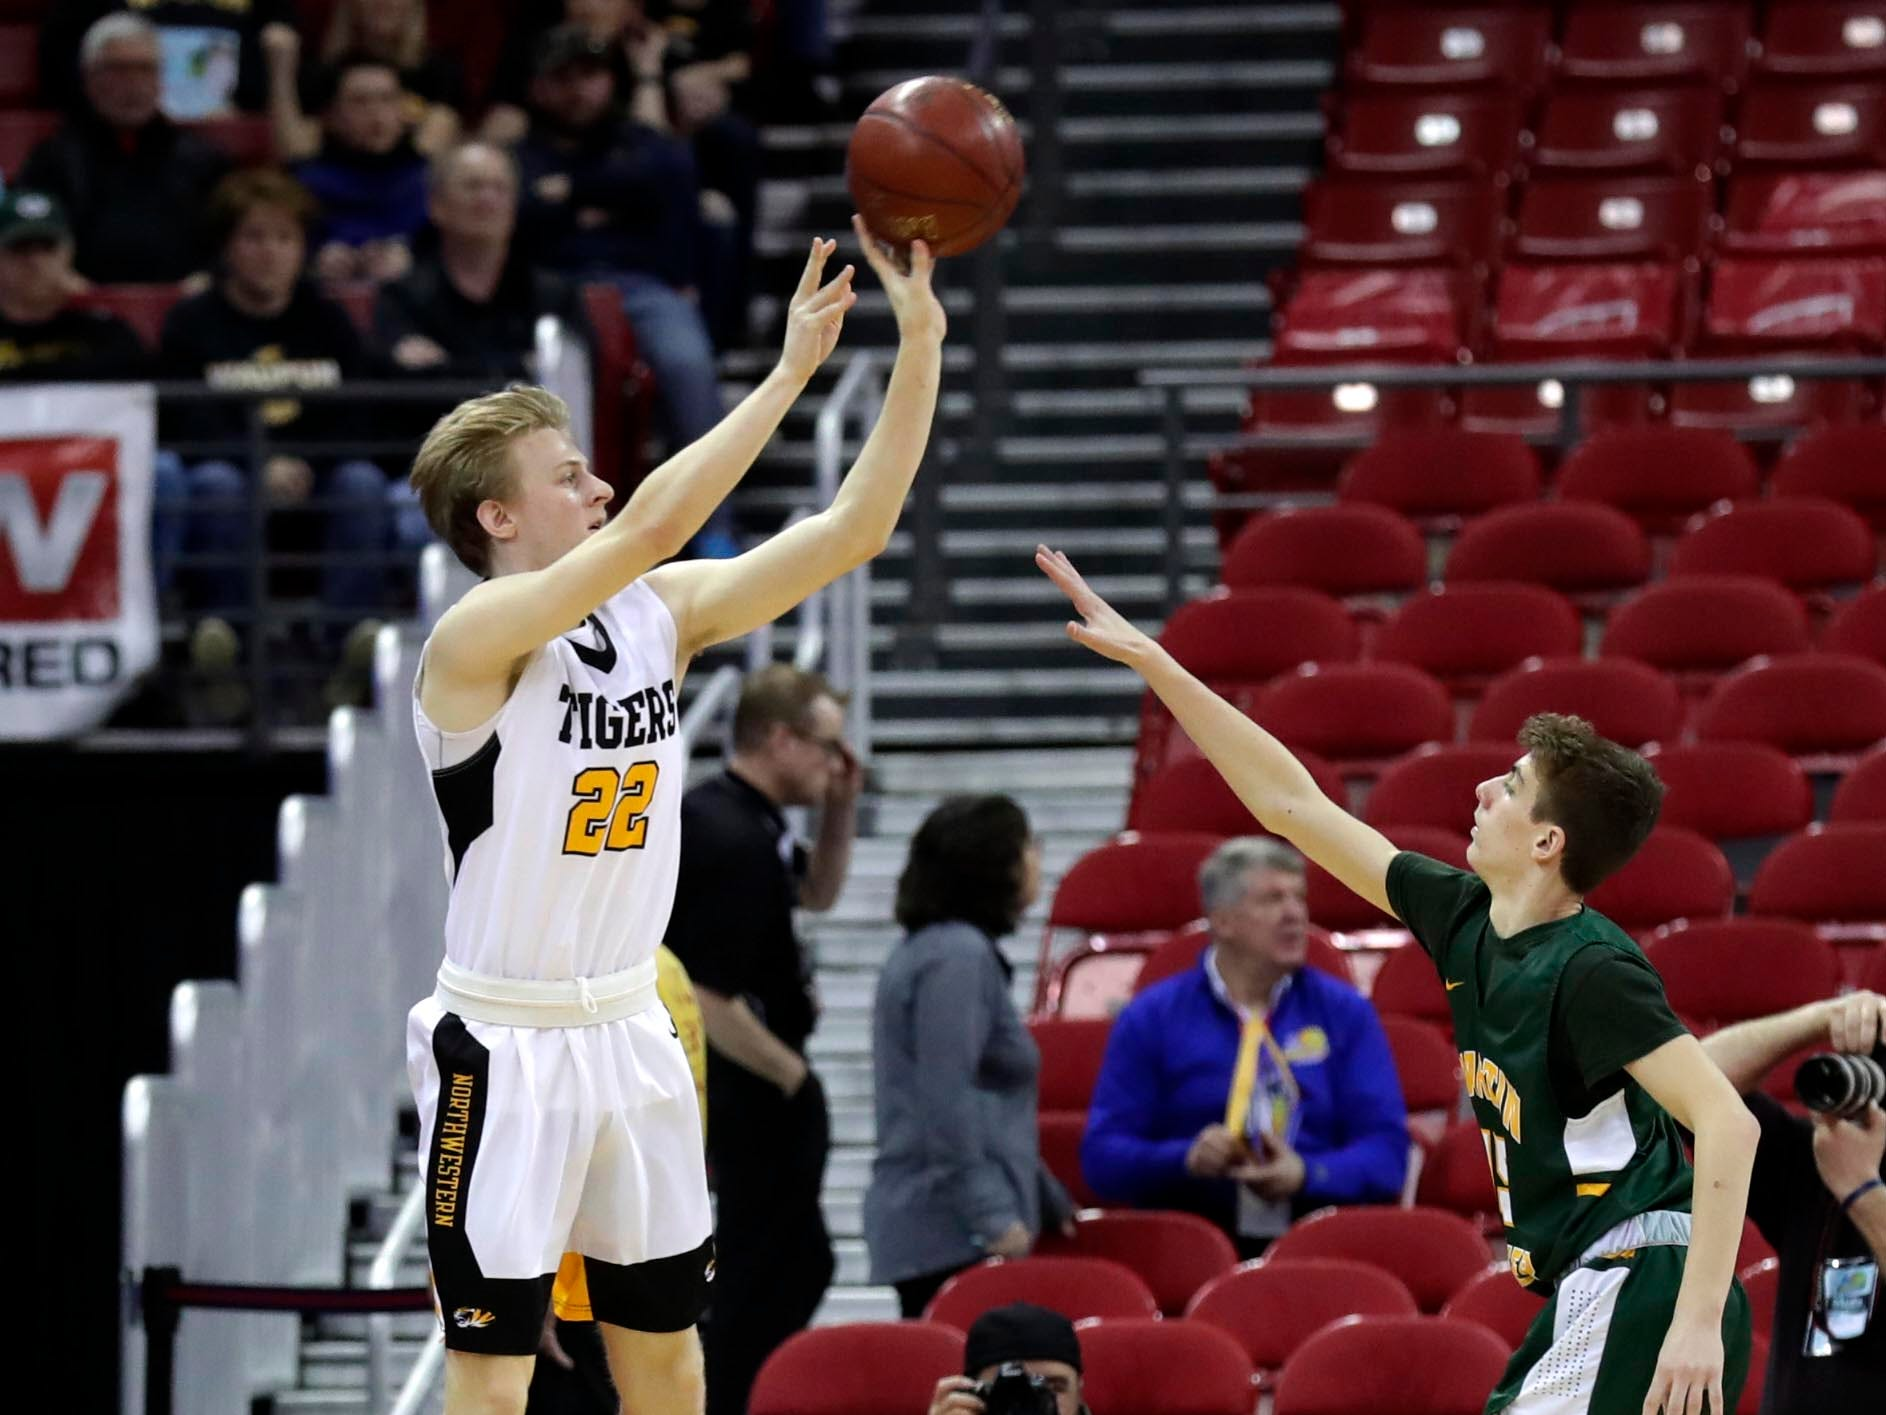 Northwewstern's Andrew Klobucher takes a three-point shot and finishes with 11 points.